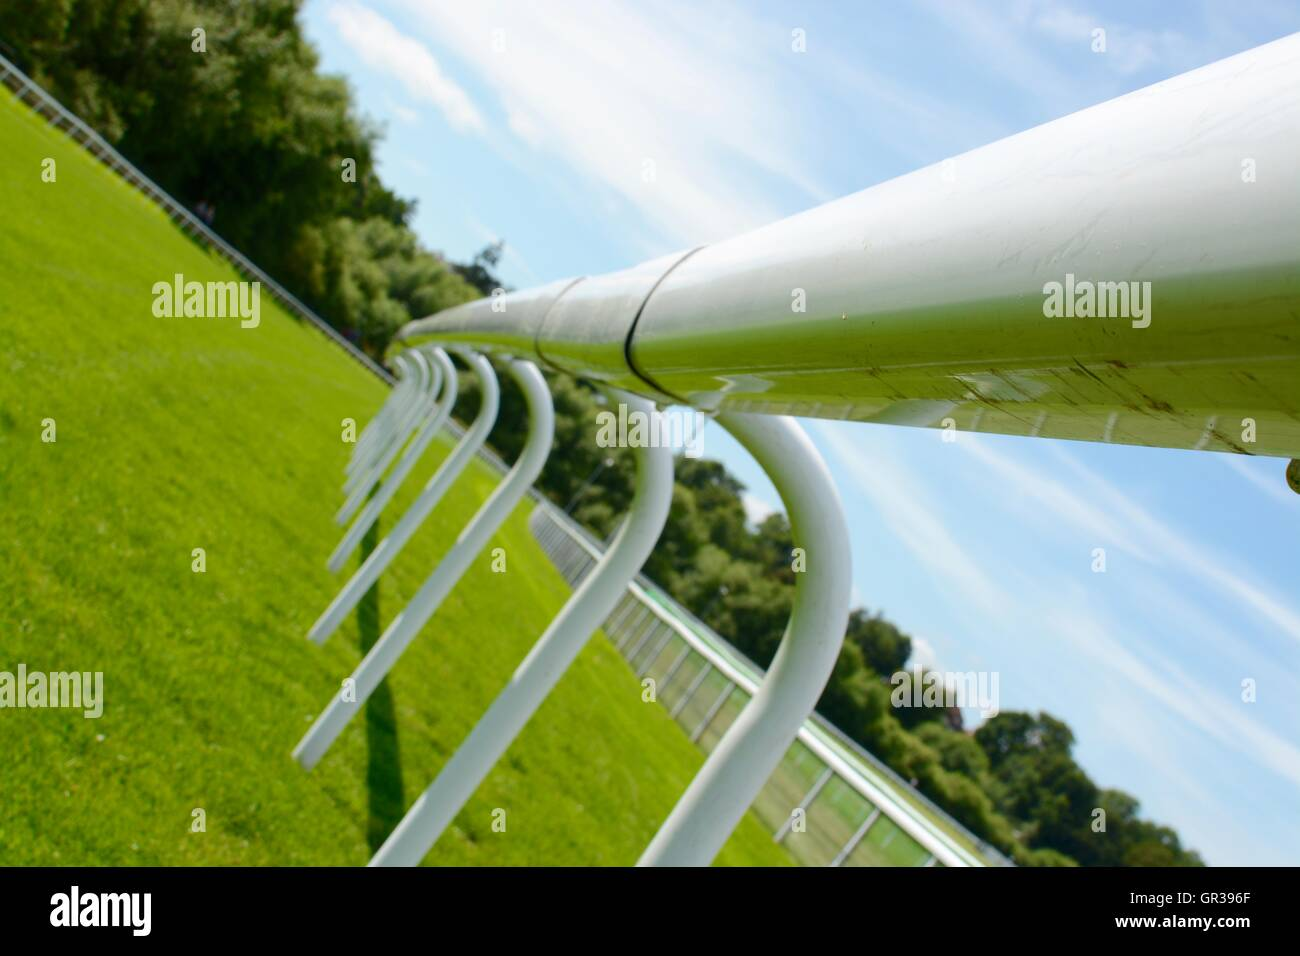 Fence at a horse race track - Stock Image